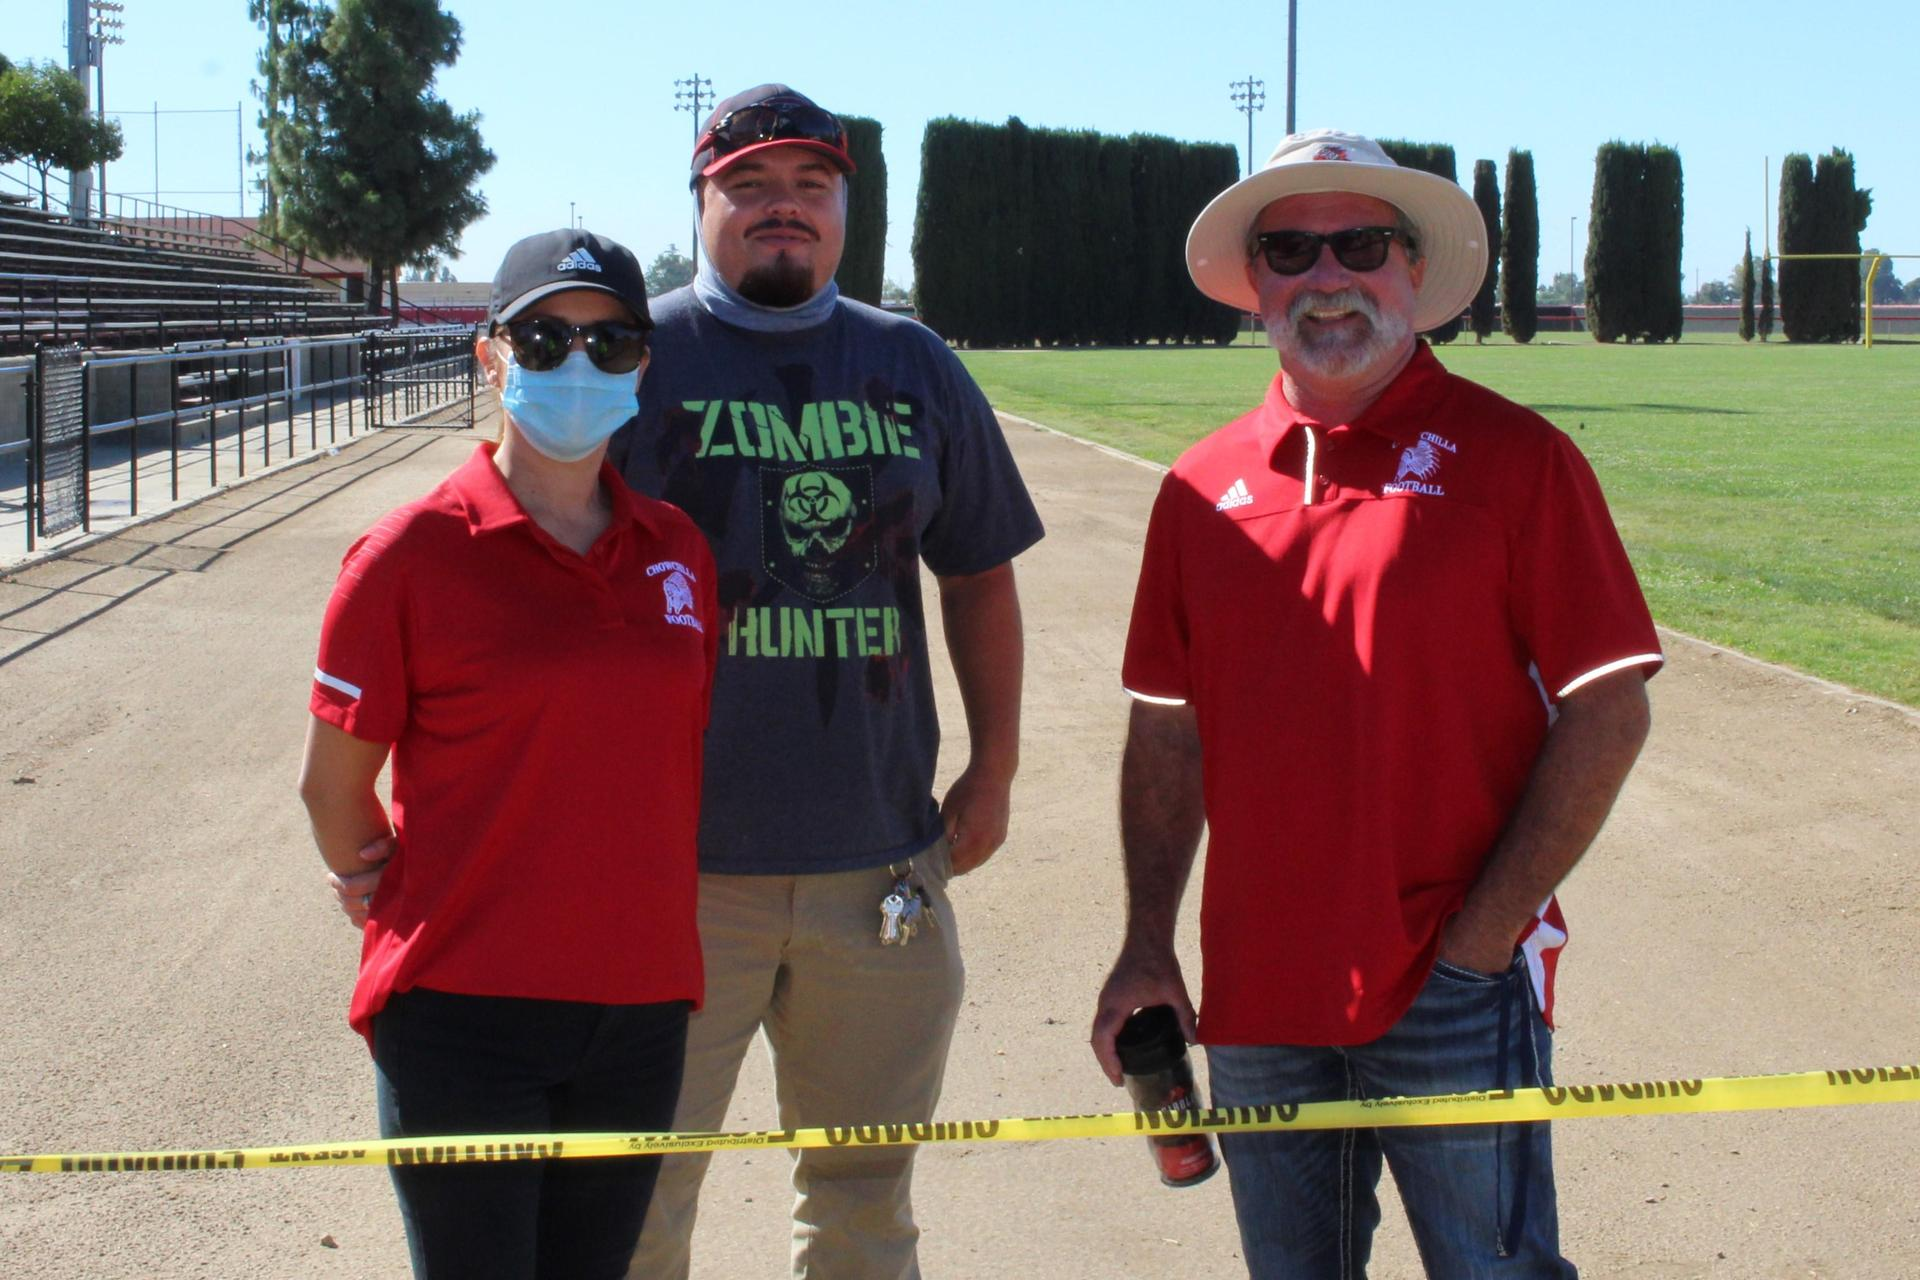 Laura Rodriguez, Pablo Chavez Ceja and Superintendent Ron Seals at the field Exit